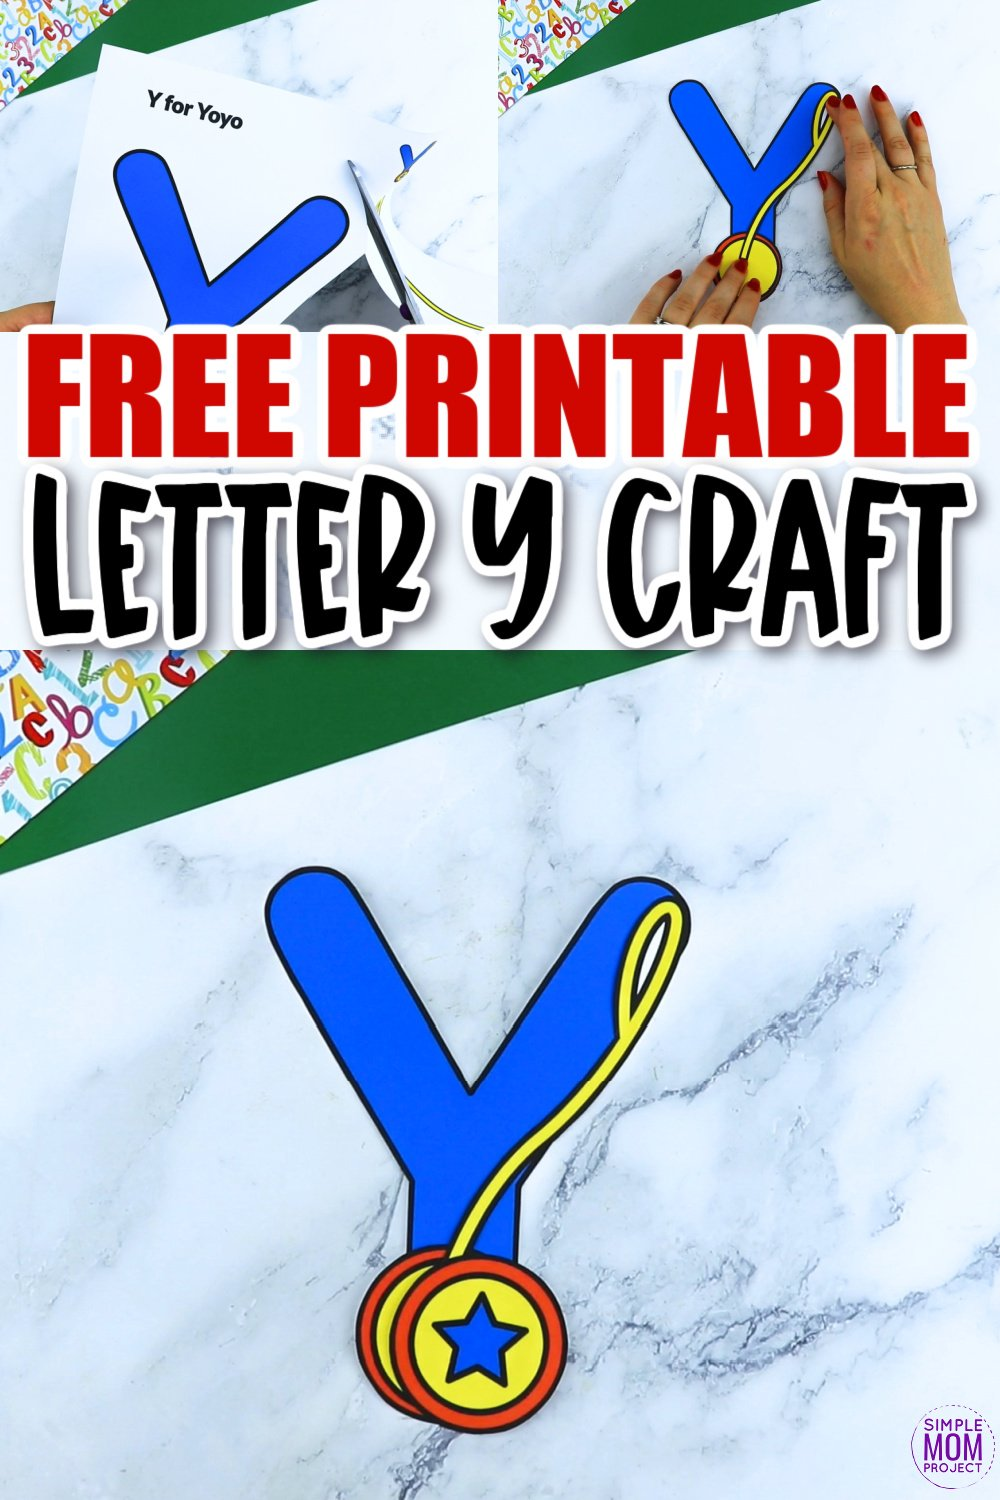 Are you looking for a fun and creative way to teach the alphabet uppercase letter Y? Use this fun preschool free printable letter Y for YoYo learning craft activities. Grab other things that start with the letter Y like a Yoda toy, yarn or even find a picture of a yacht as you make this easy letter Y craft. Your kindergarten students will also love making this fun printable letter Y is for yoyo craft.